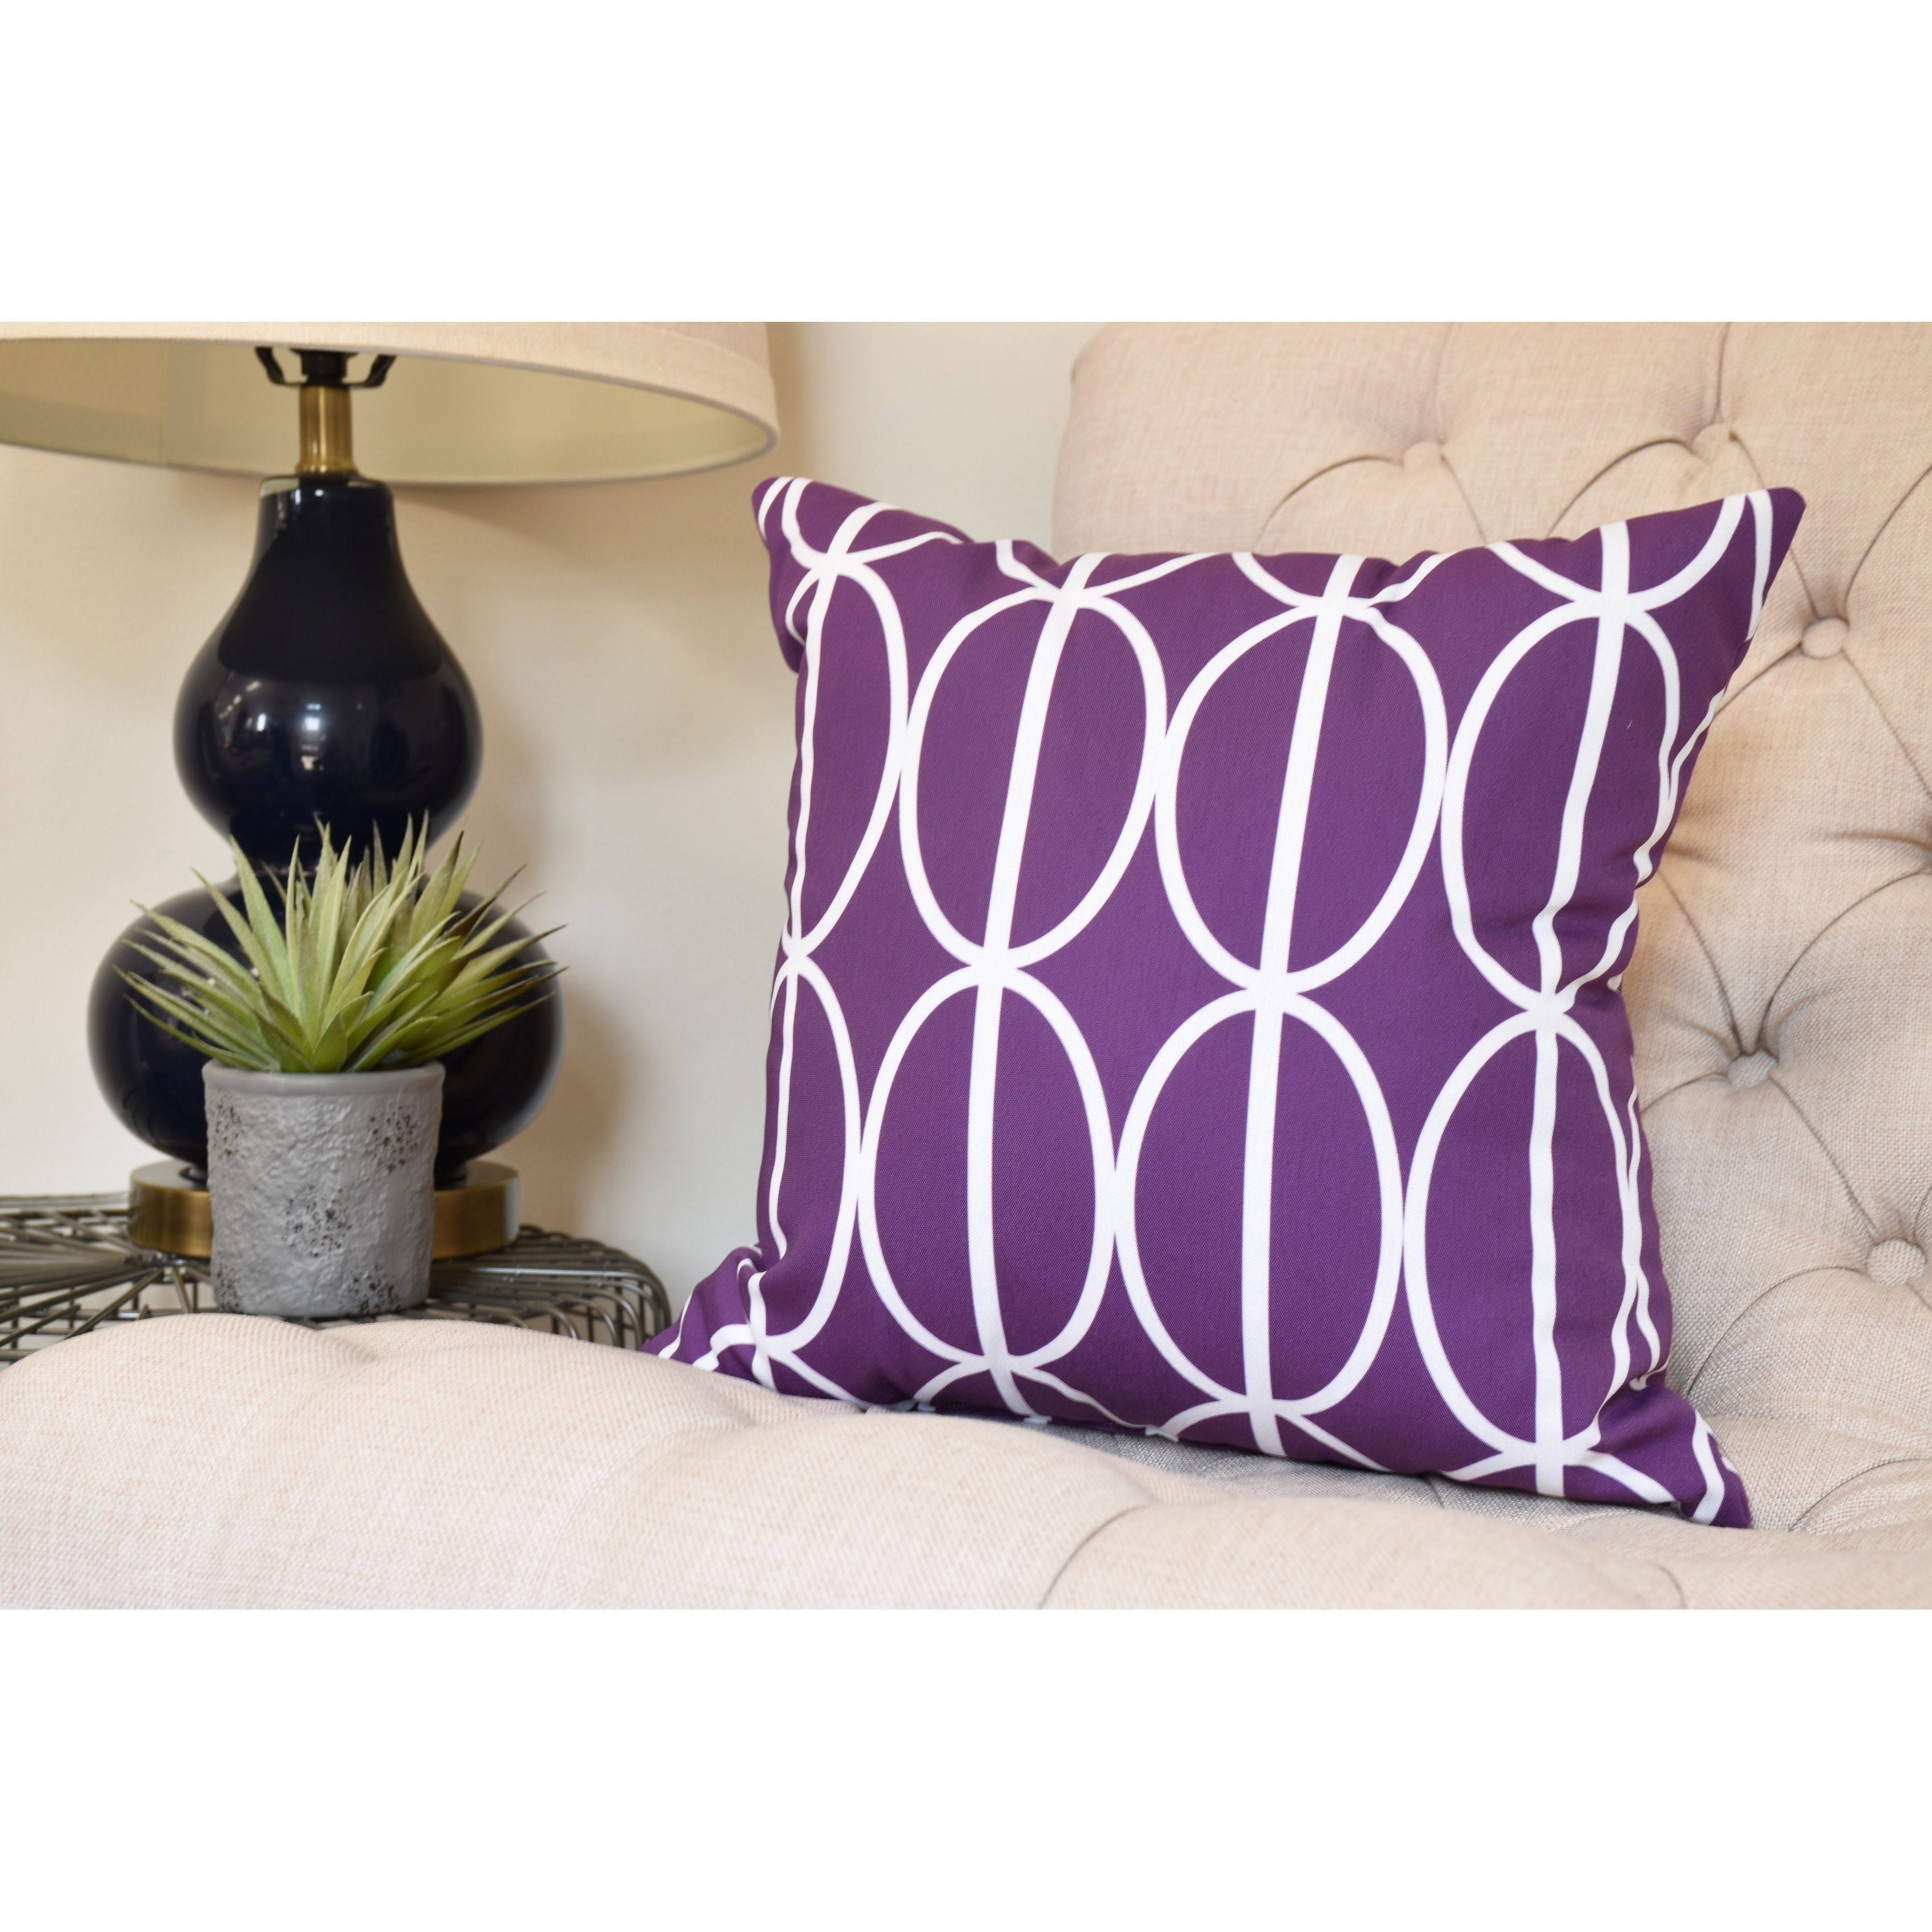 Ovals Go Round 18 Inch Decorative Abstract Throw Pillow Free Shipping On Orders Over 45 20600328